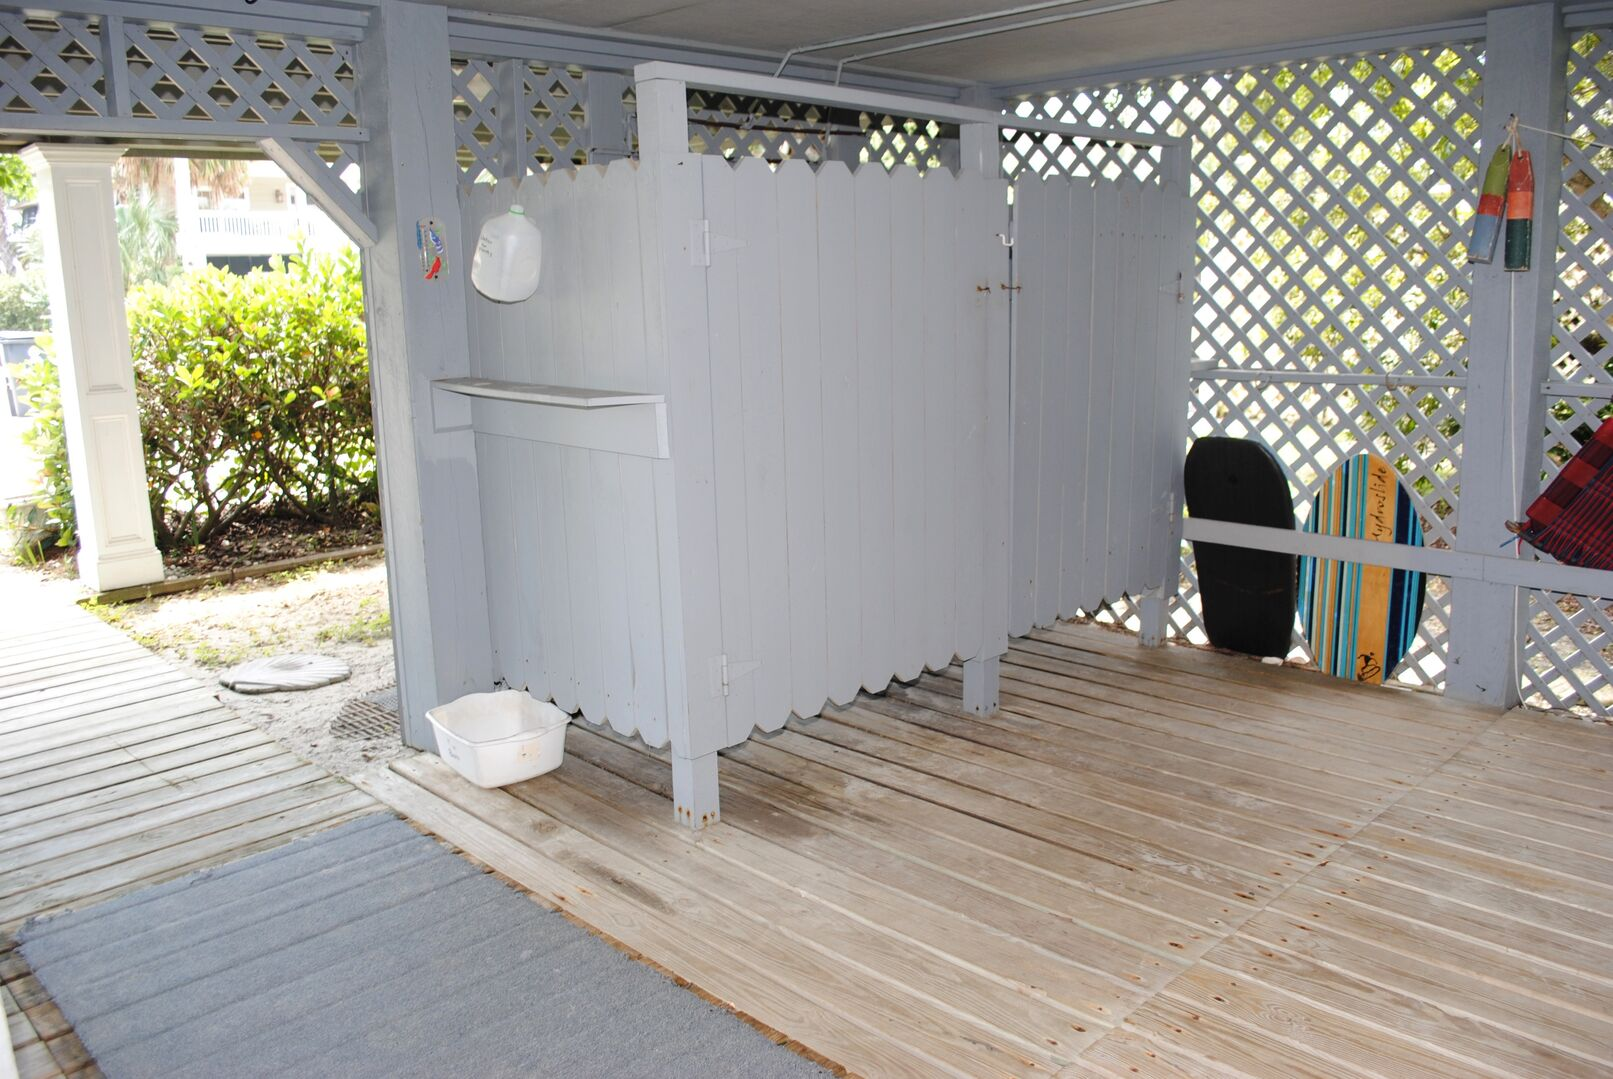 Ground Level - Enclosed Outdoor Shower